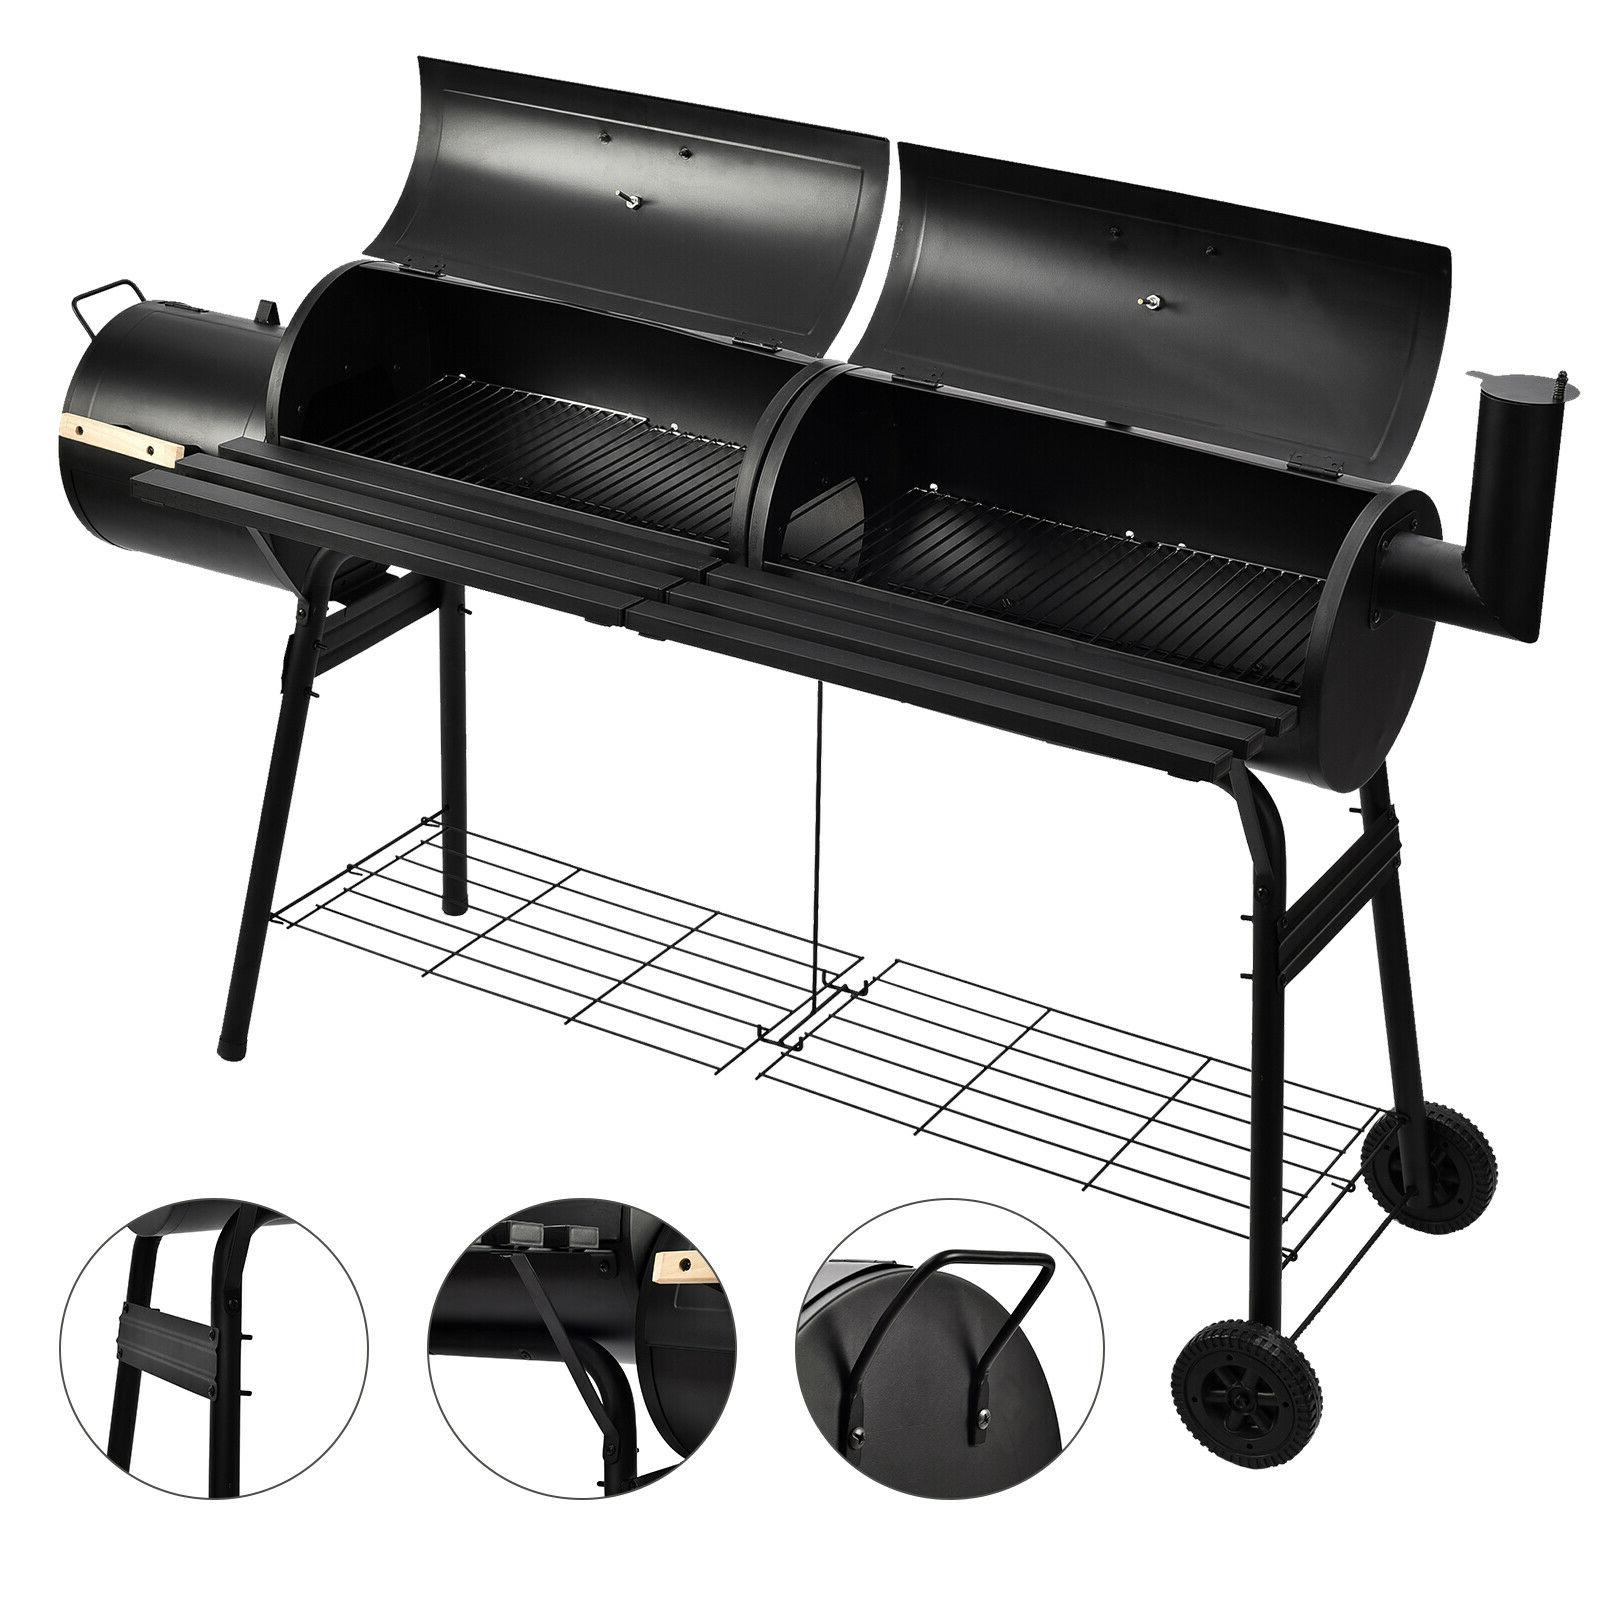 "68"" BBQ Charcoal Barbecue Pit Backyard Meat Cooker Smoker"